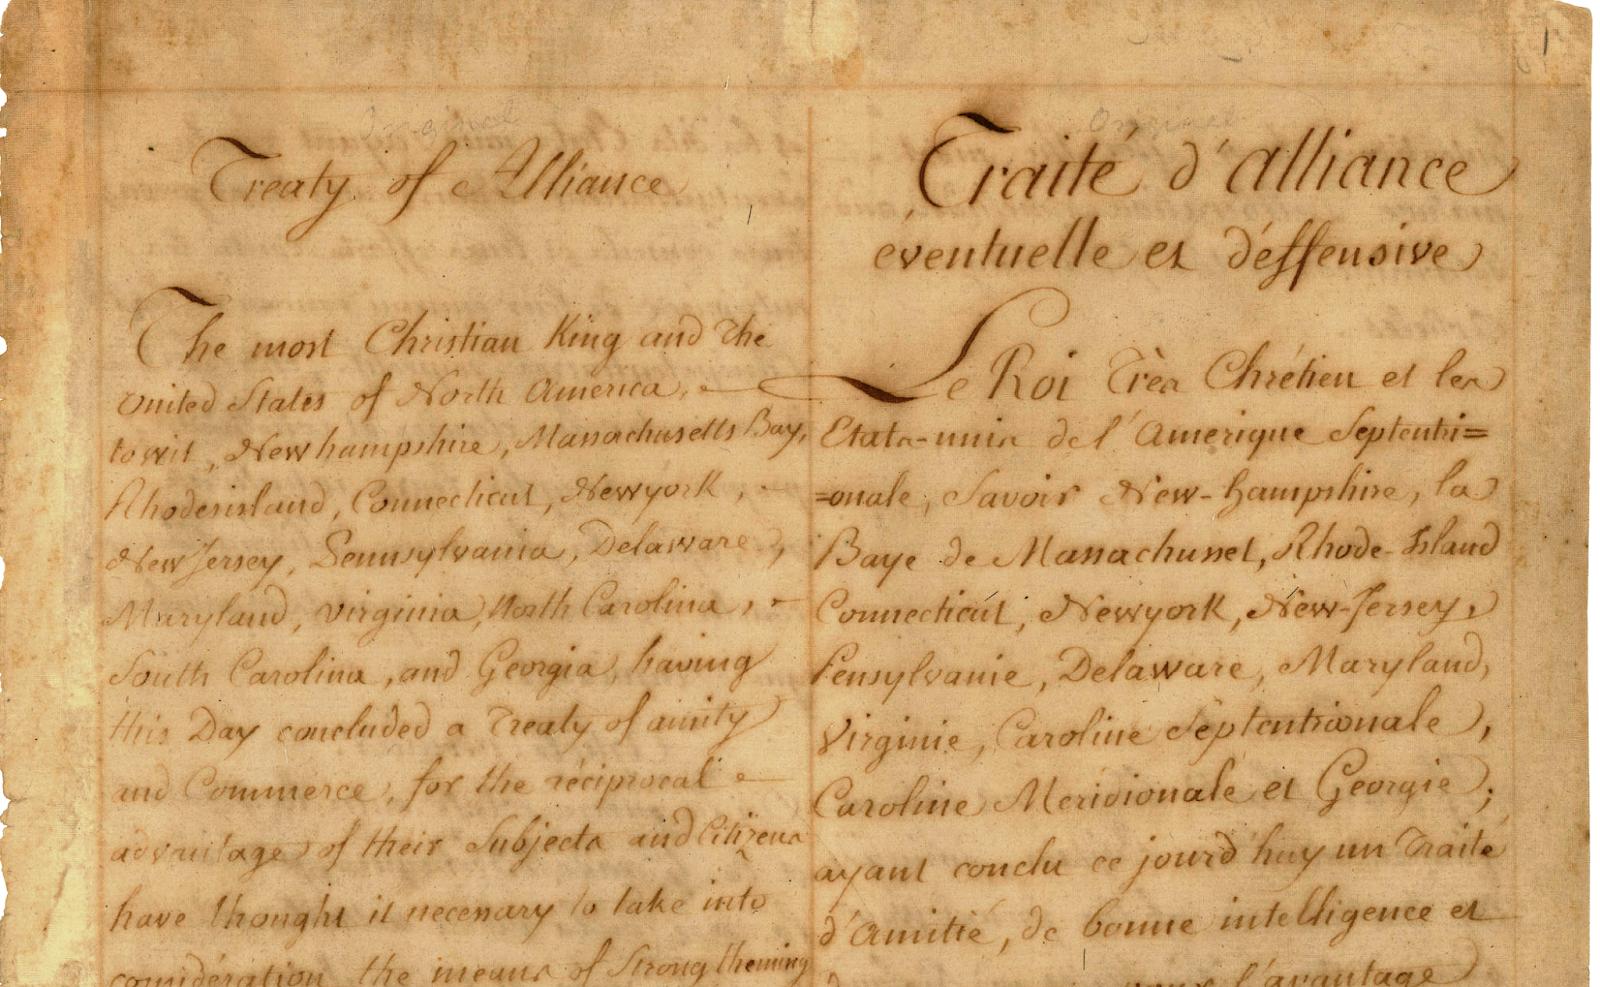 Franco-American Treaty of Amity and Commerce Dual Language Manuscript February 6, 1778